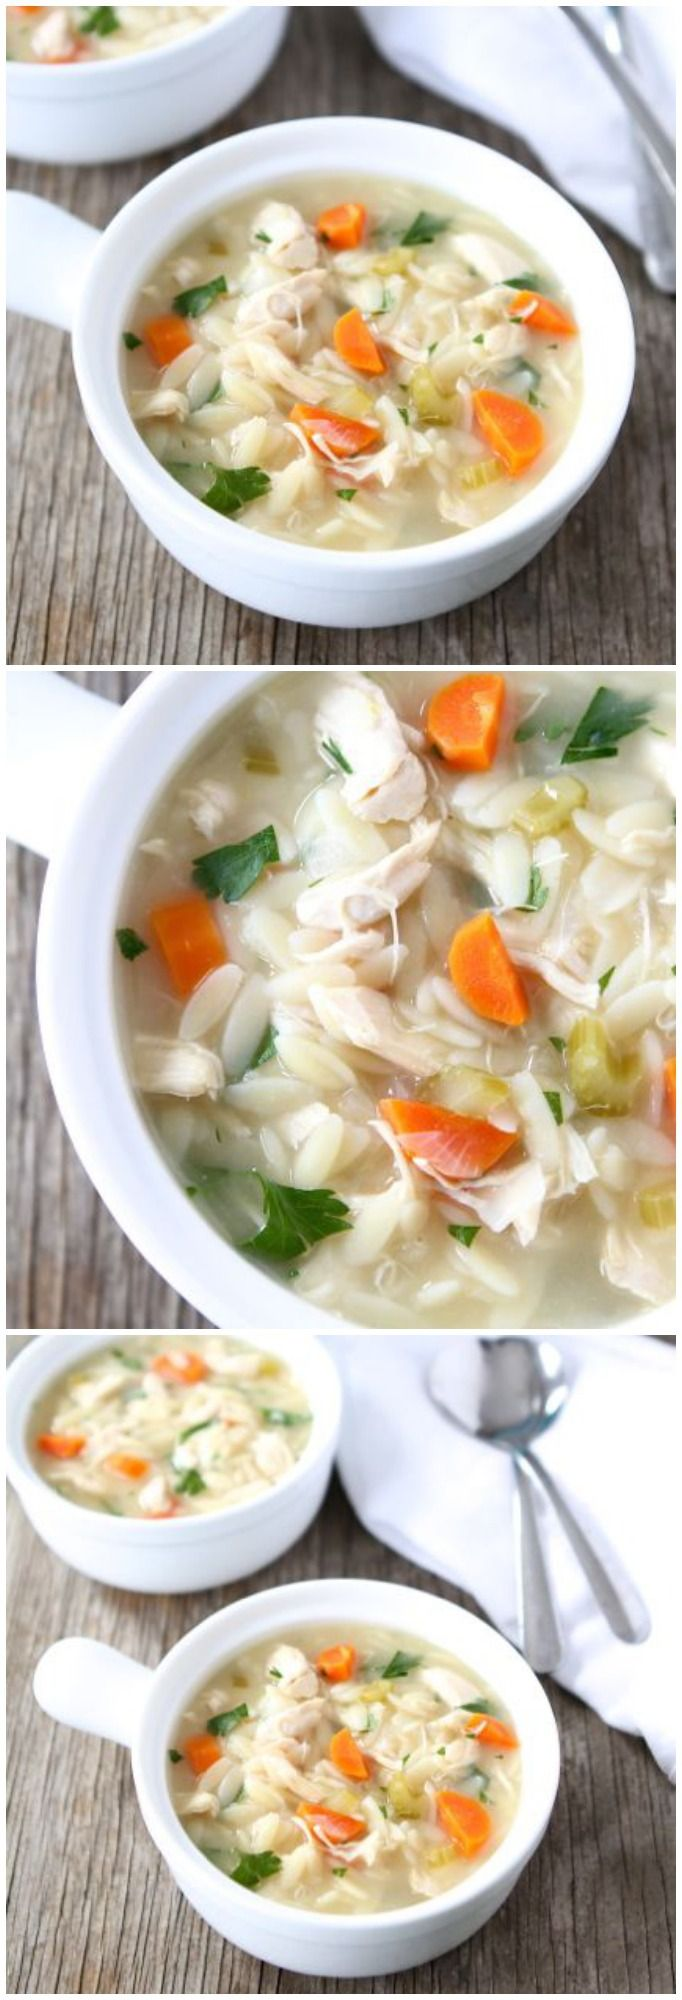 Lemon Chicken Orzo Soup Recipe on twopeasandtheirpod.com Love this healthy and comforting soup!